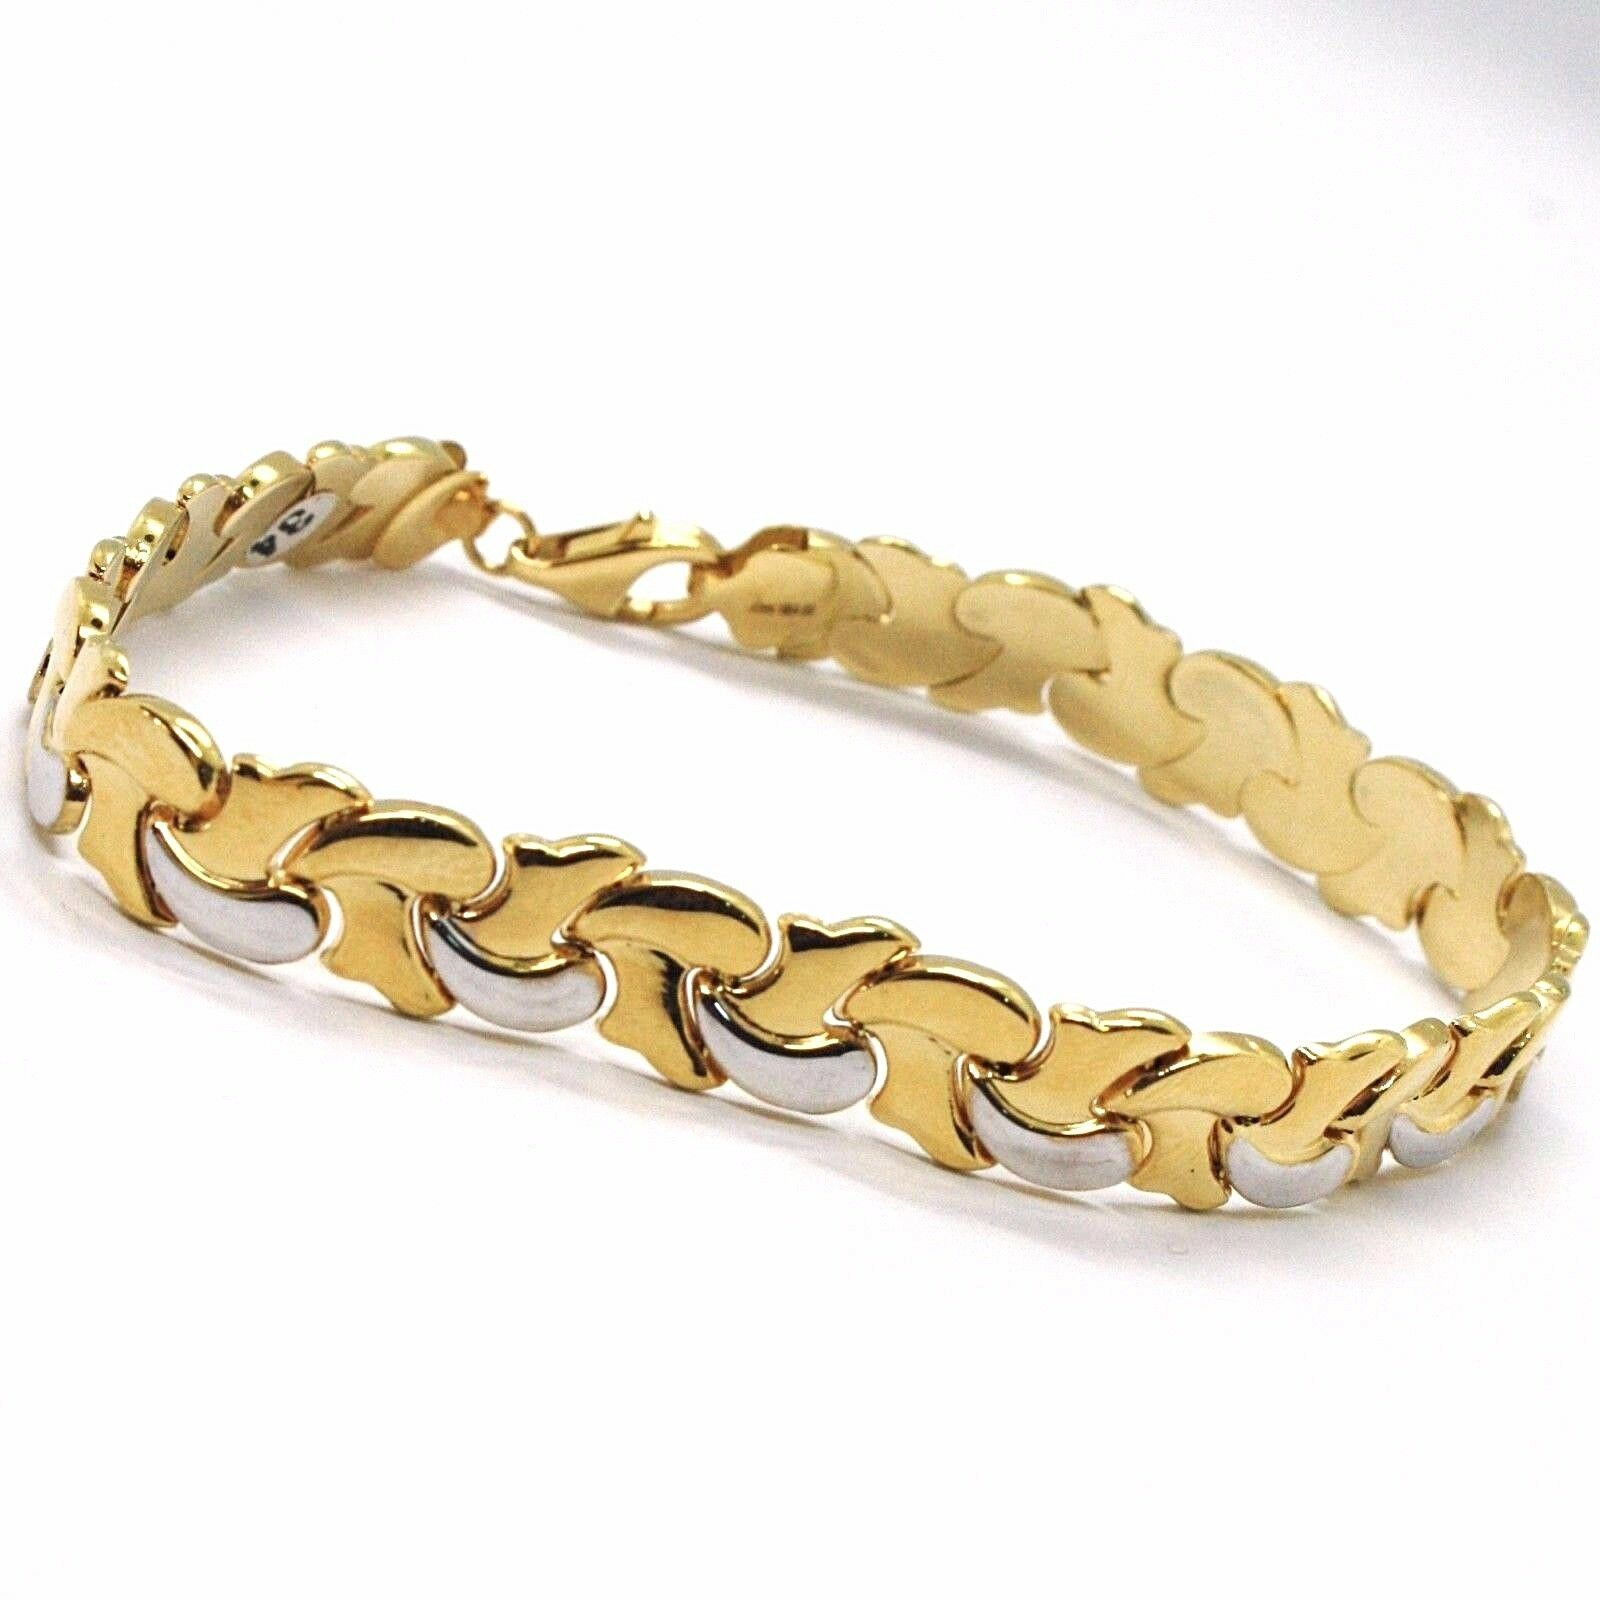 18K YELLOW, WHITE GOLD BRACELET ALTERNATE FLAT BRAID ONDULATE LINK MADE IN ITALY